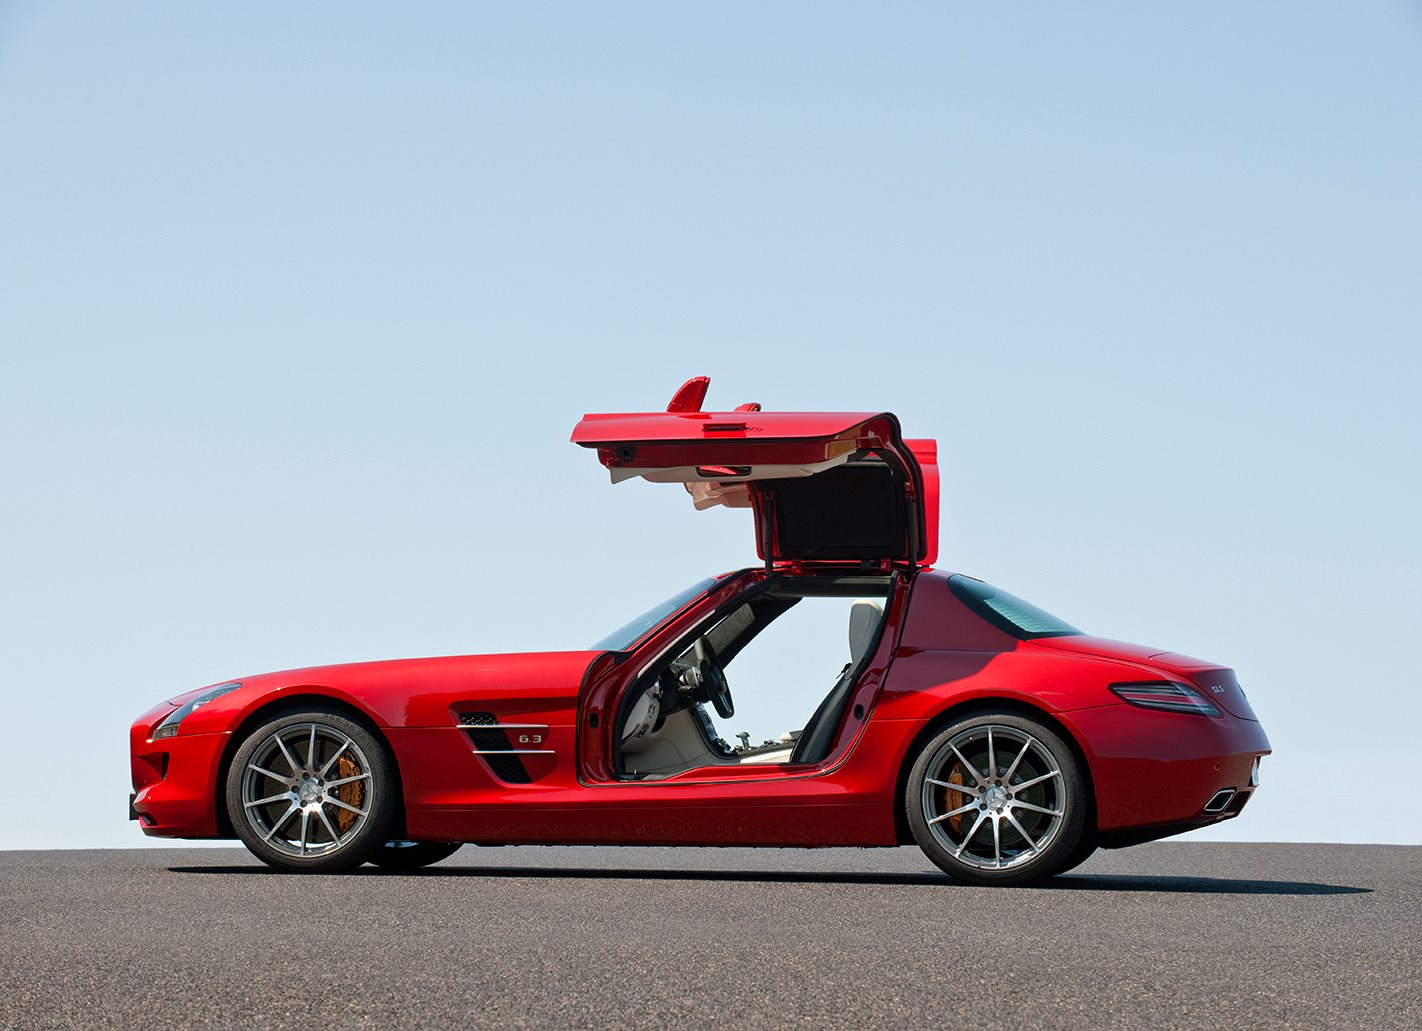 Mercedes-Benz SLS AMG scissor door side profile